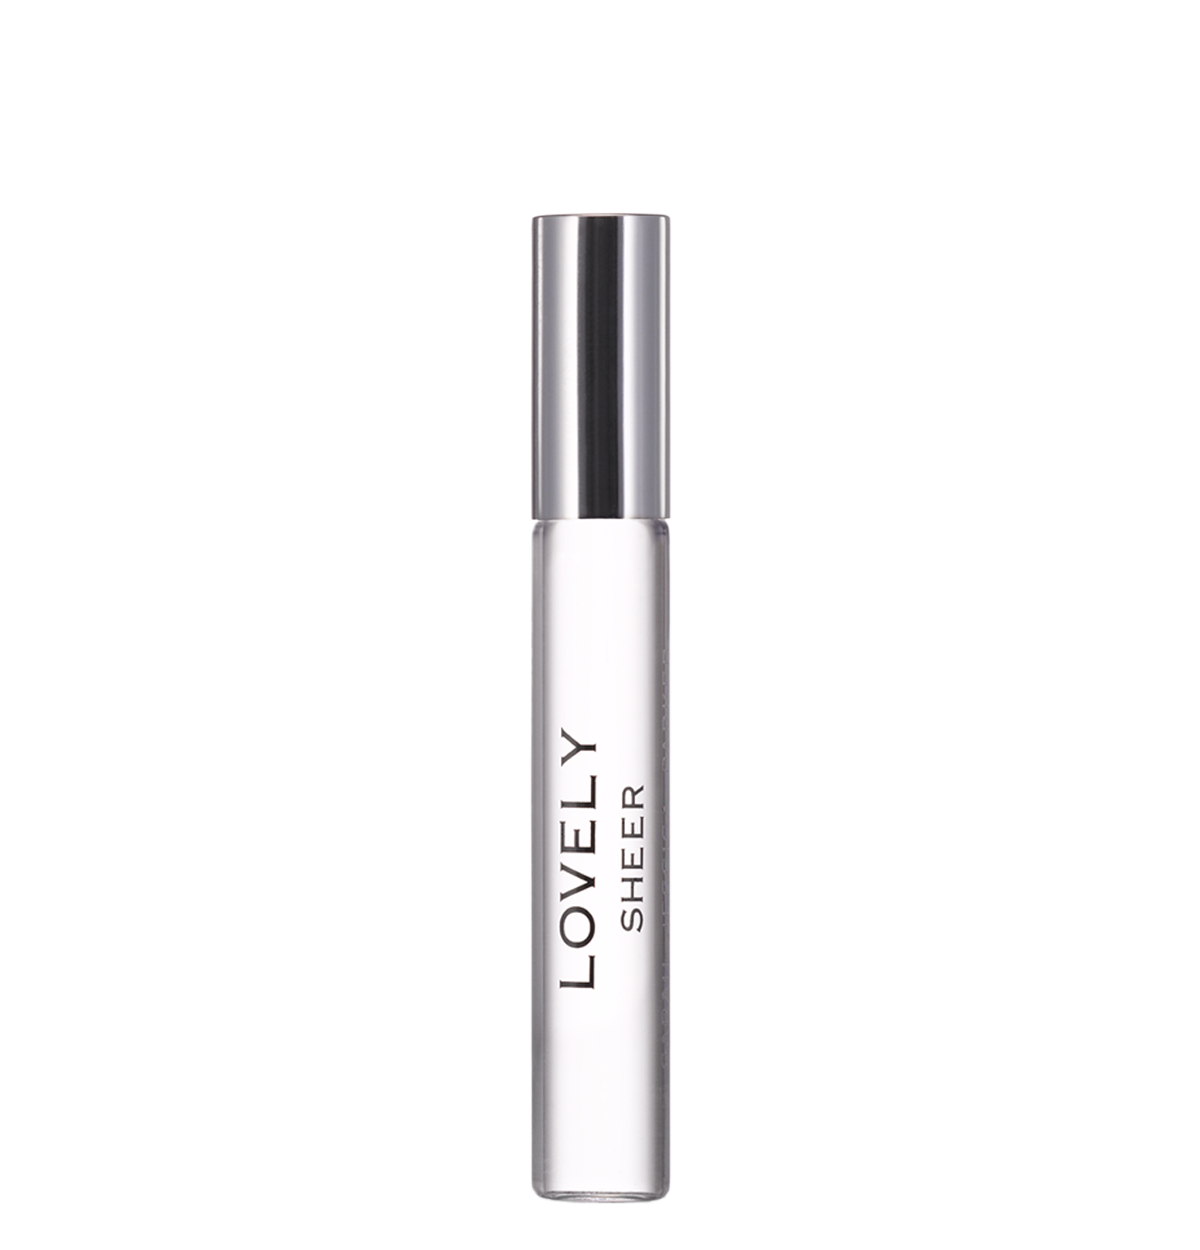 Lovely Sheer Eau de Parfum Rollerball